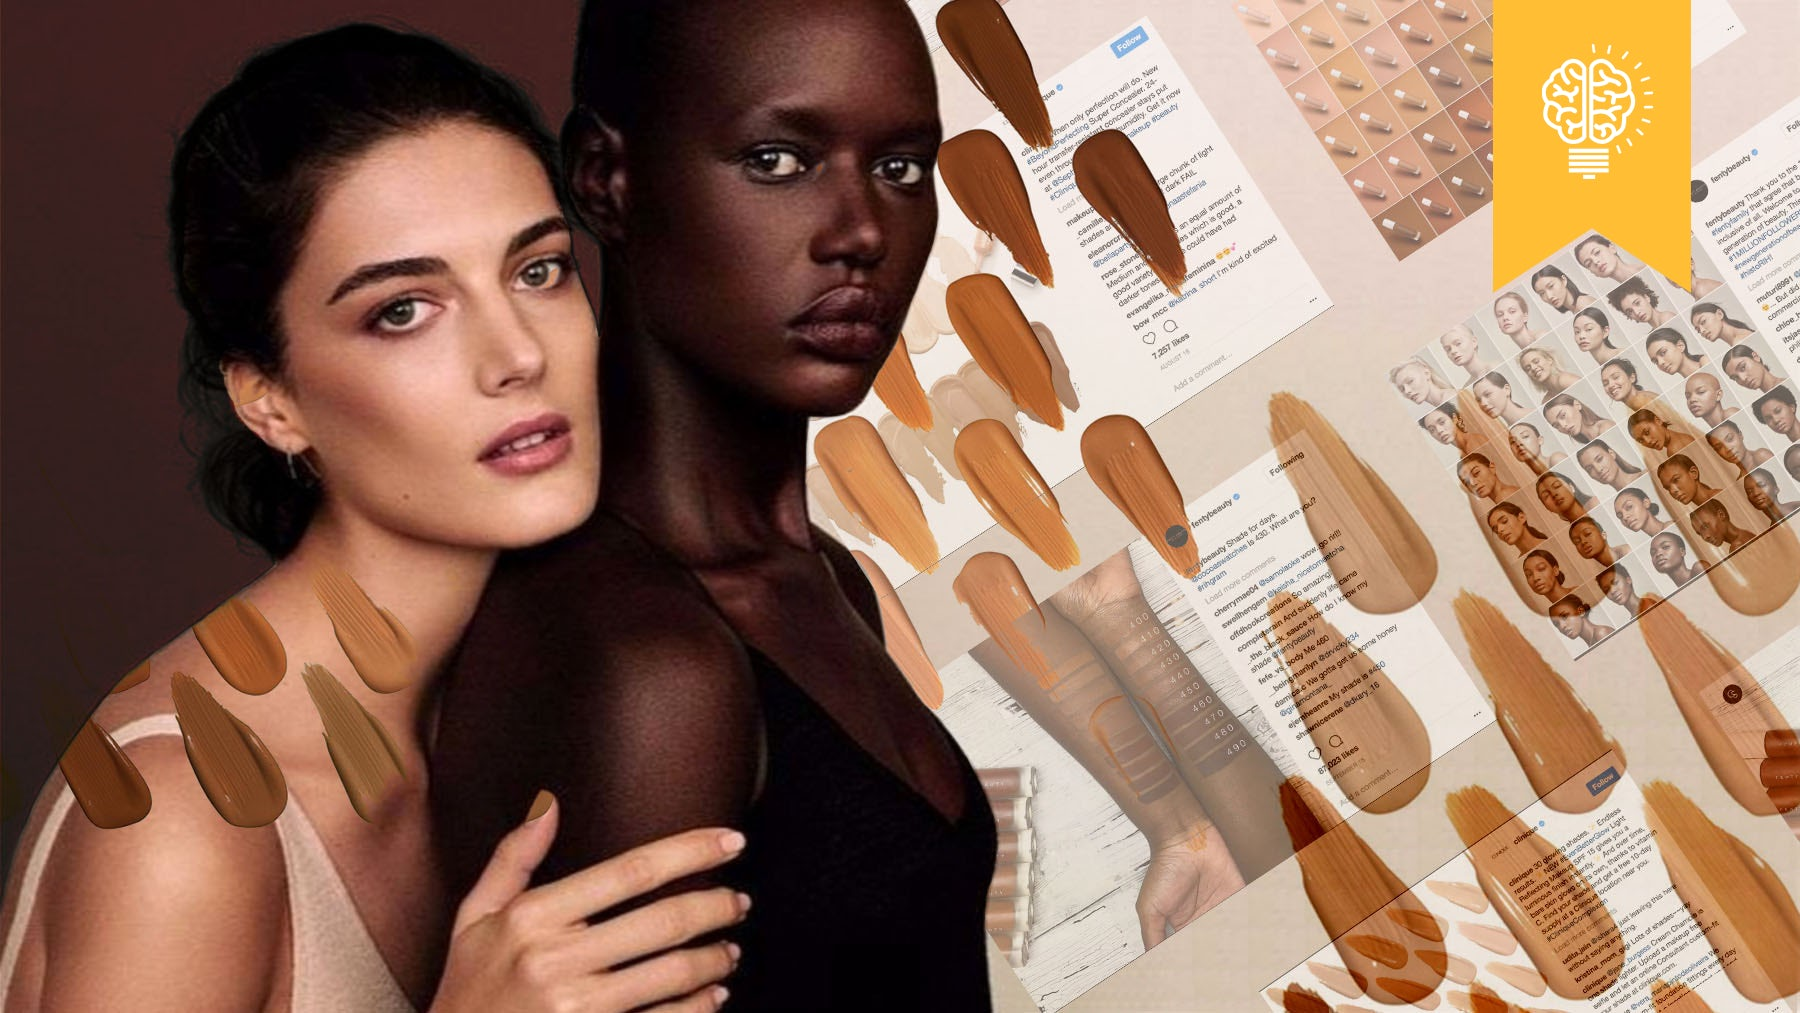 Models Katryn Kruger and Ajak Deng in Cover FX's Nude is Not Beige campaign, and Instagram images from Clinique, Fenty Beauty, Estée Lauder and more | Source: Illustration by Nerea Verdejo Blanco for The Business of Fashion